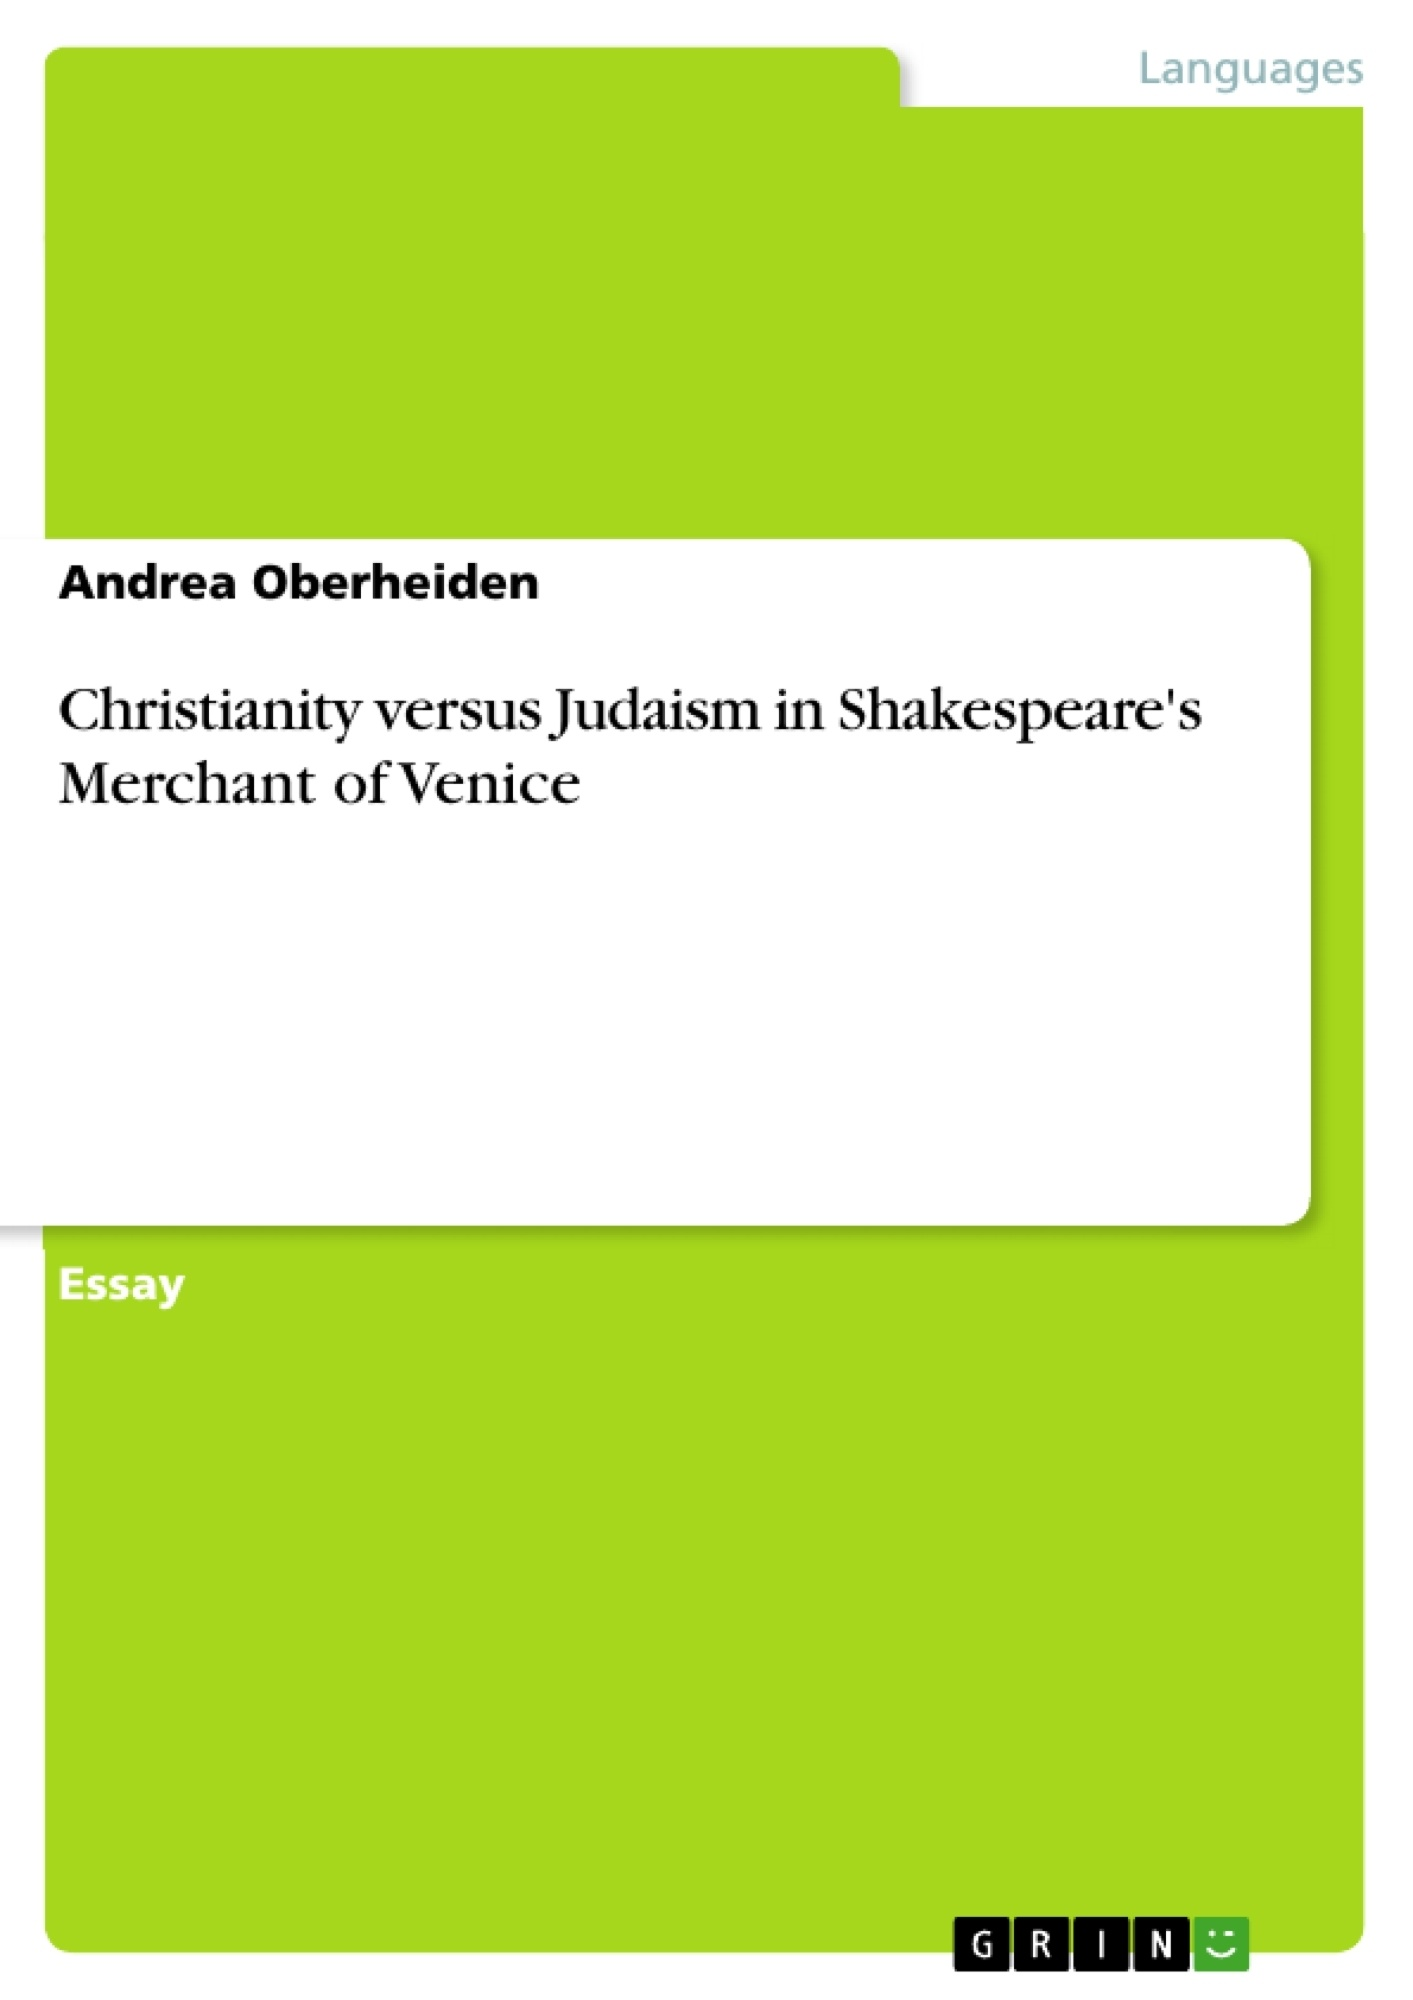 merchant of venice essay portia in the merchant of venice essay  christianity versus judaism in shakespeare s merchant of venice christianity versus judaism in shakespeare s merchant